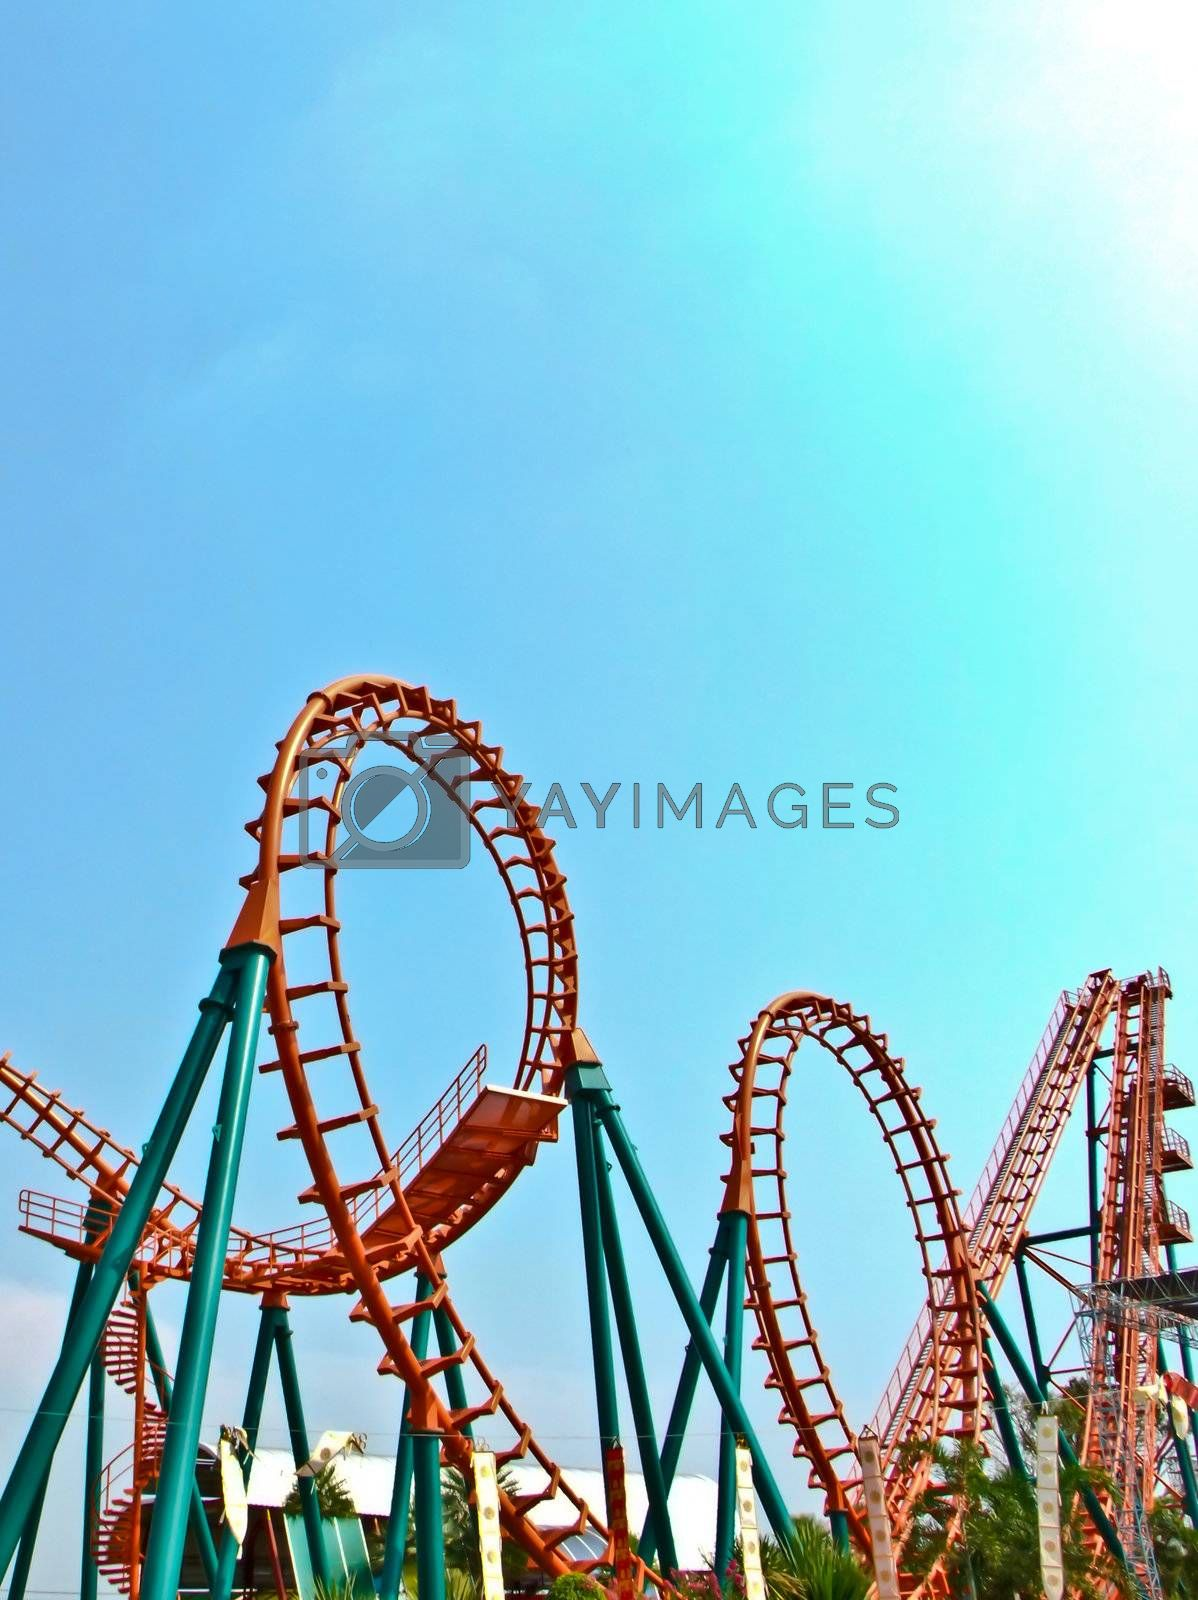 The colorful of roller coaster so long and twist